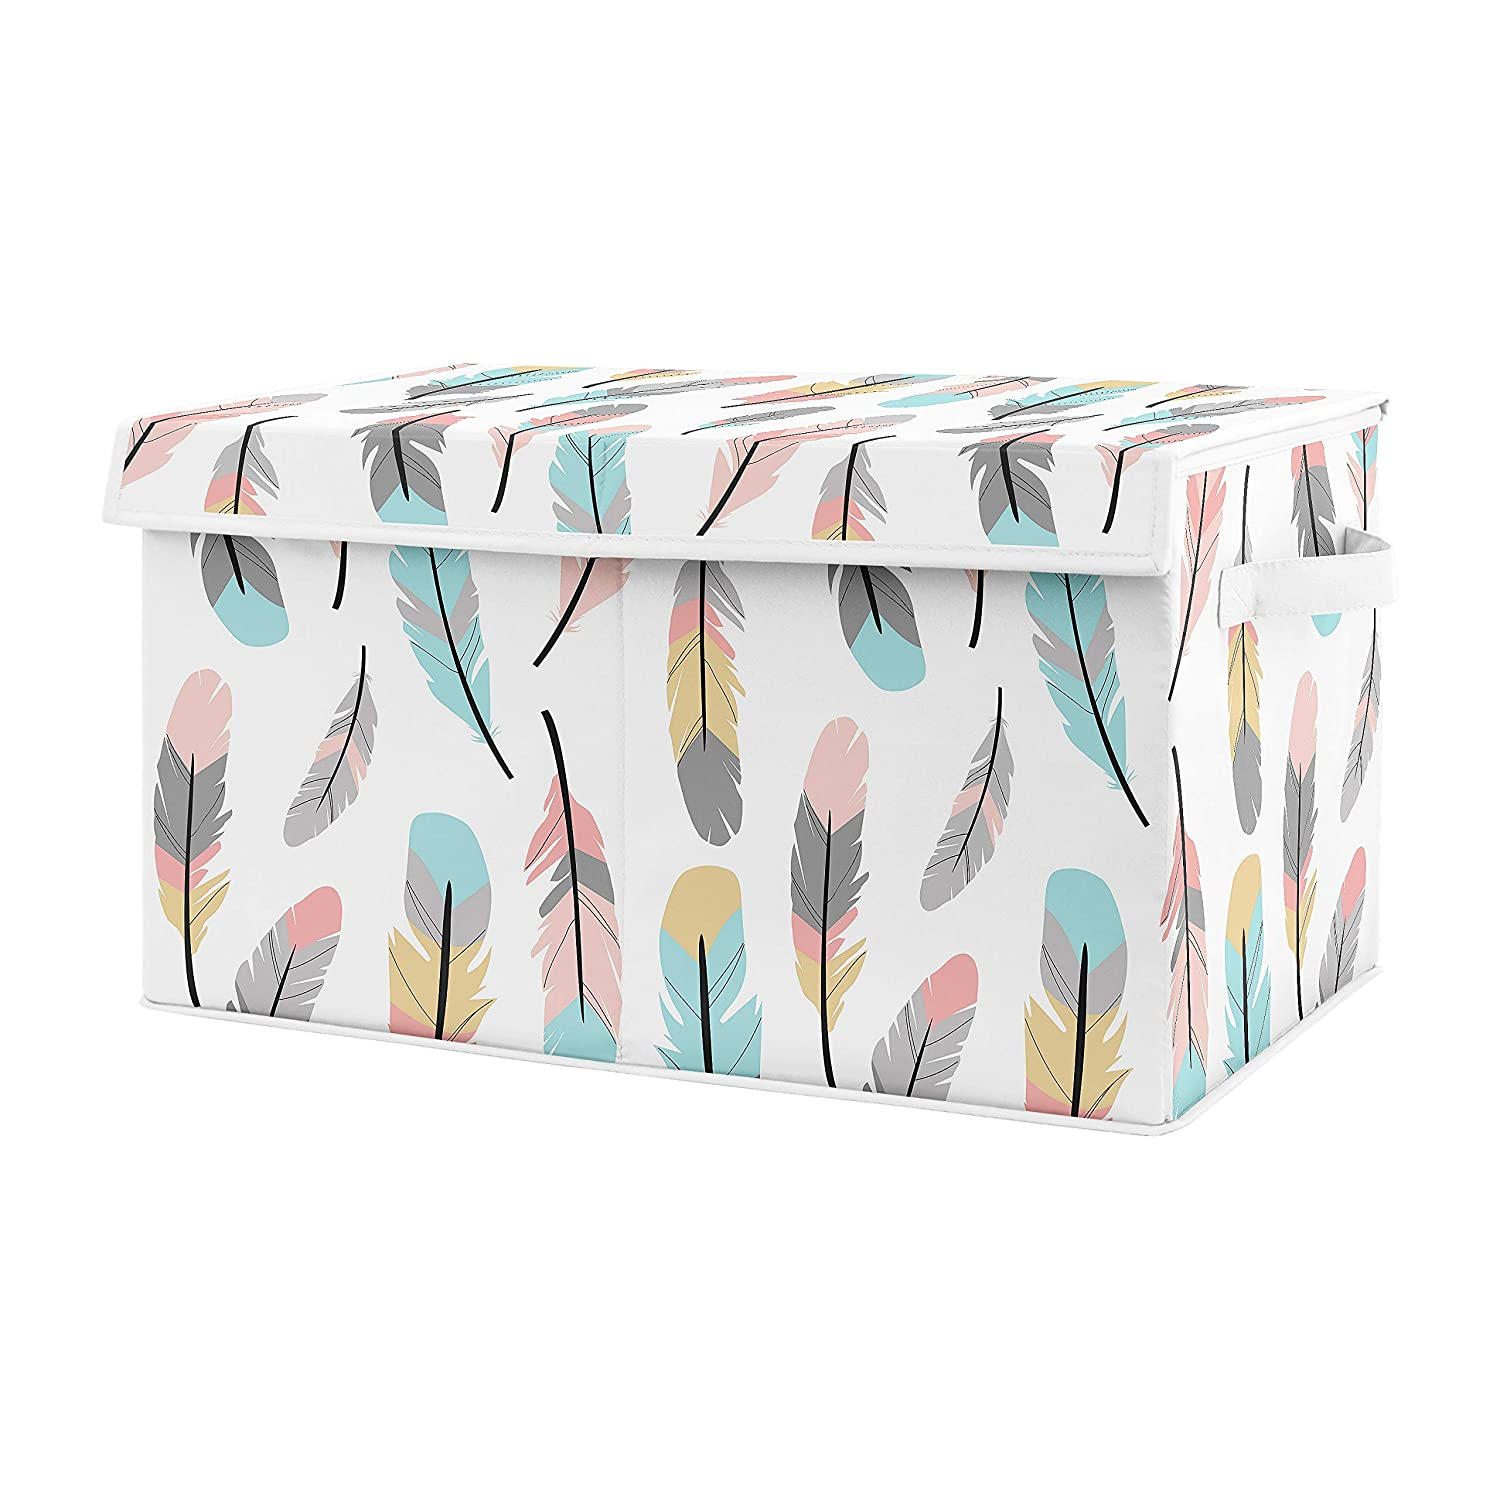 Sweet Jojo Designs Turquoise and Coral Boho Girl Baby Nursery or Kids Room Small Fabric Toy Bin Storage Box Chest for Feather Collection